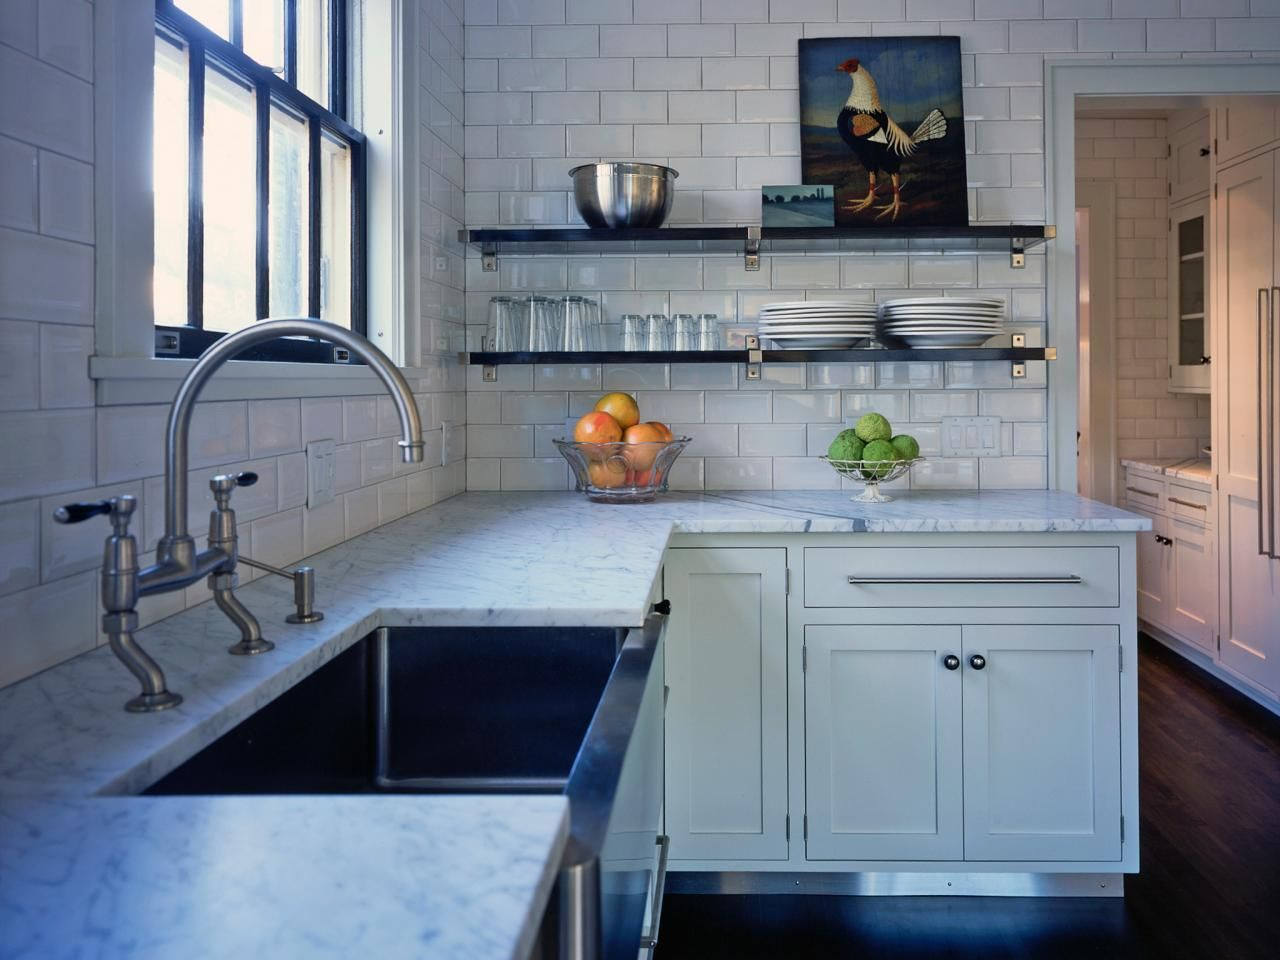 Best Kitchen Gallery: 15 Design Ideas For Kitchens Without Upper Cabi S Subway Tiles of Farmhouse Kitchens Without Upper Cabinets on rachelxblog.com